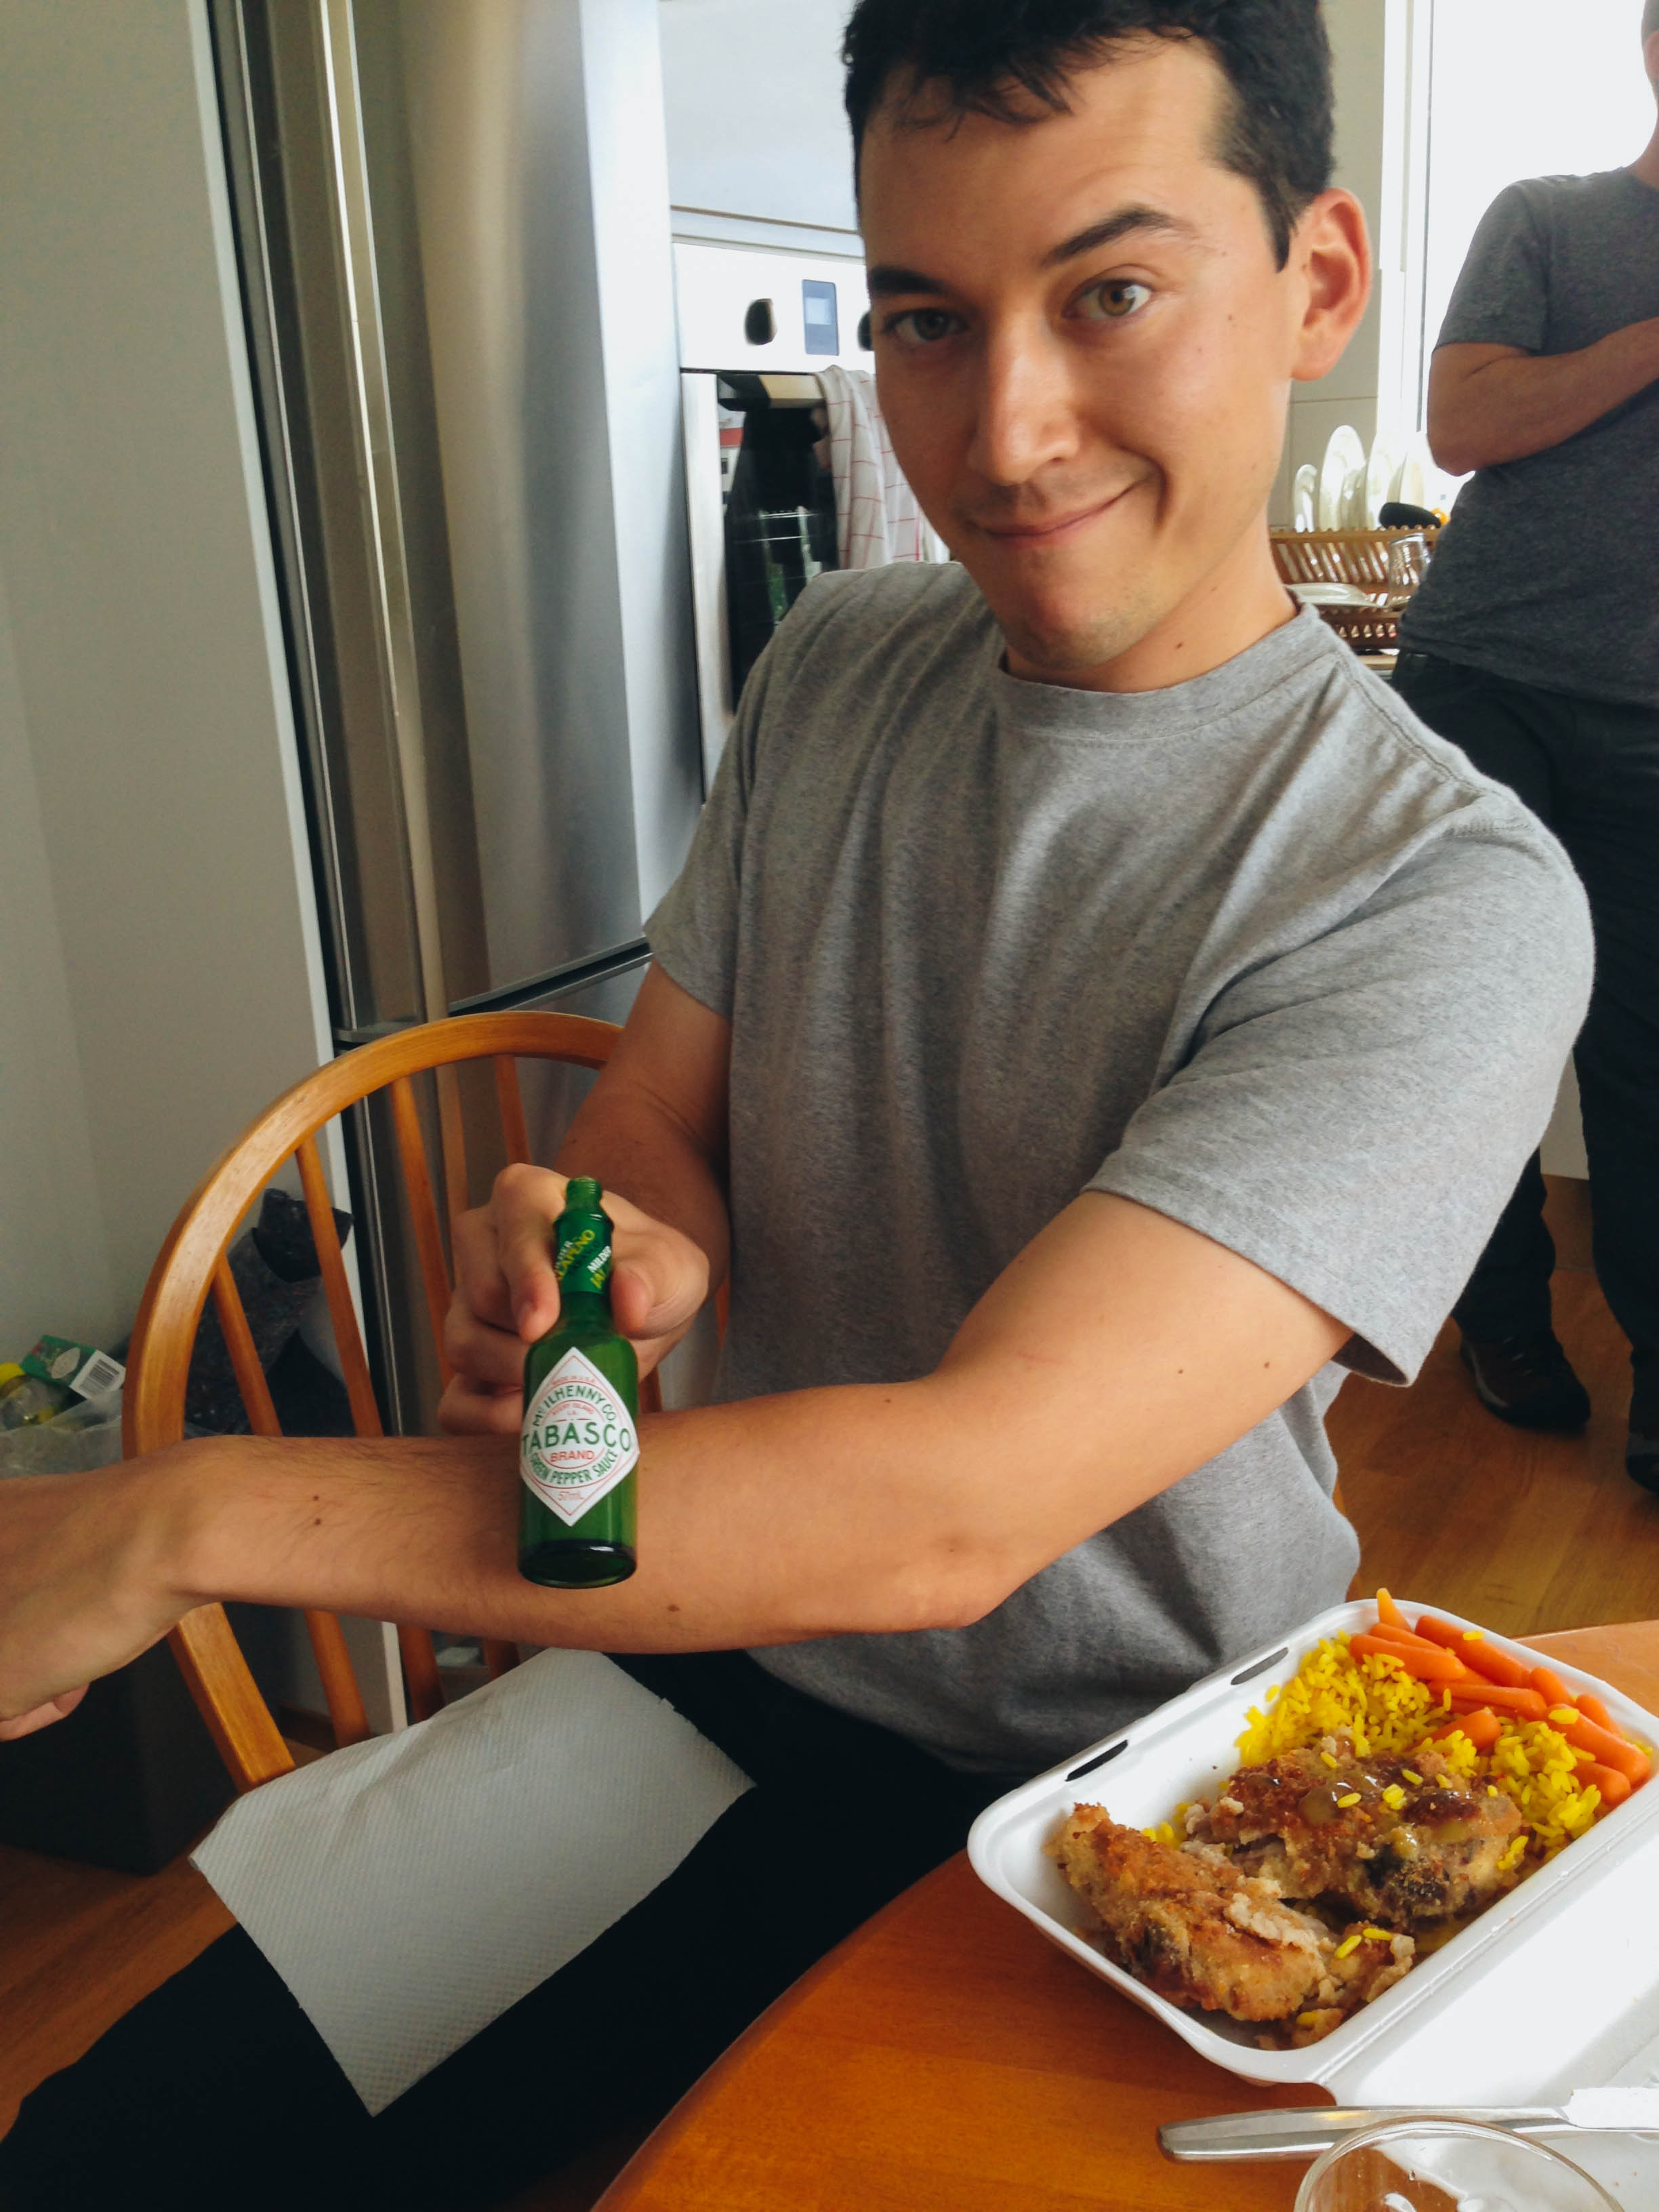 shawn brought green tabasco sauce all the way from USA. we cracked it open to celebrate the first day of filming.